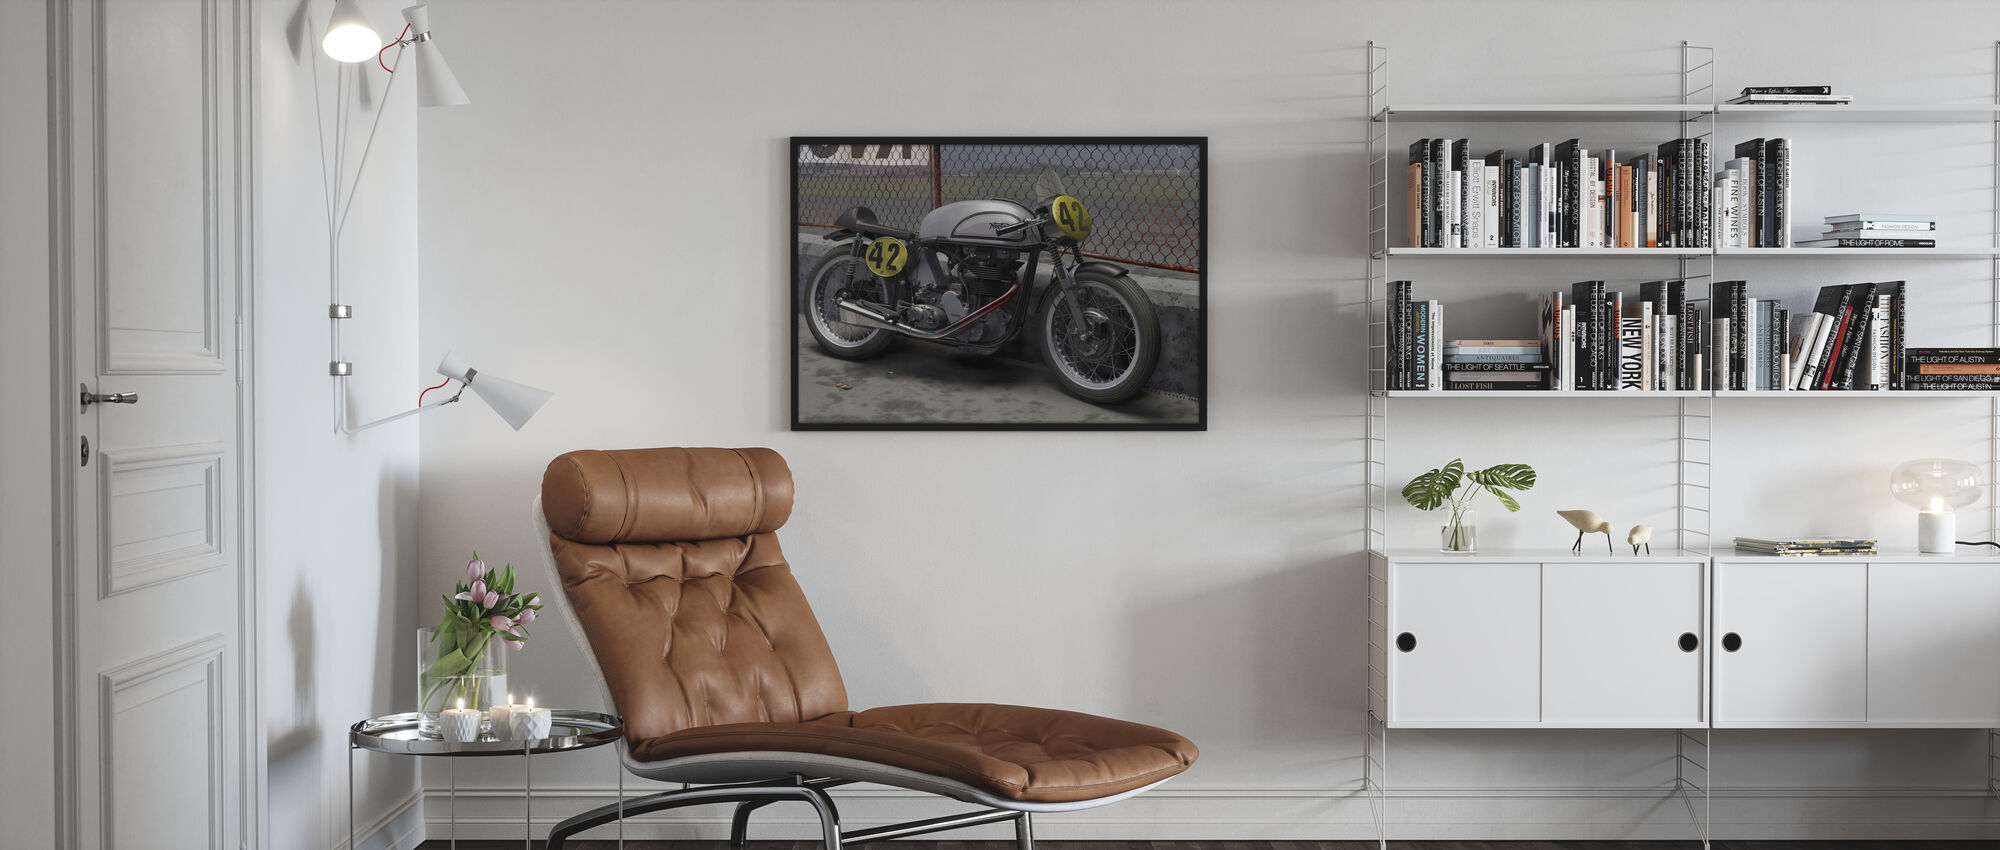 Motorcycle Final - Framed print - Living Room